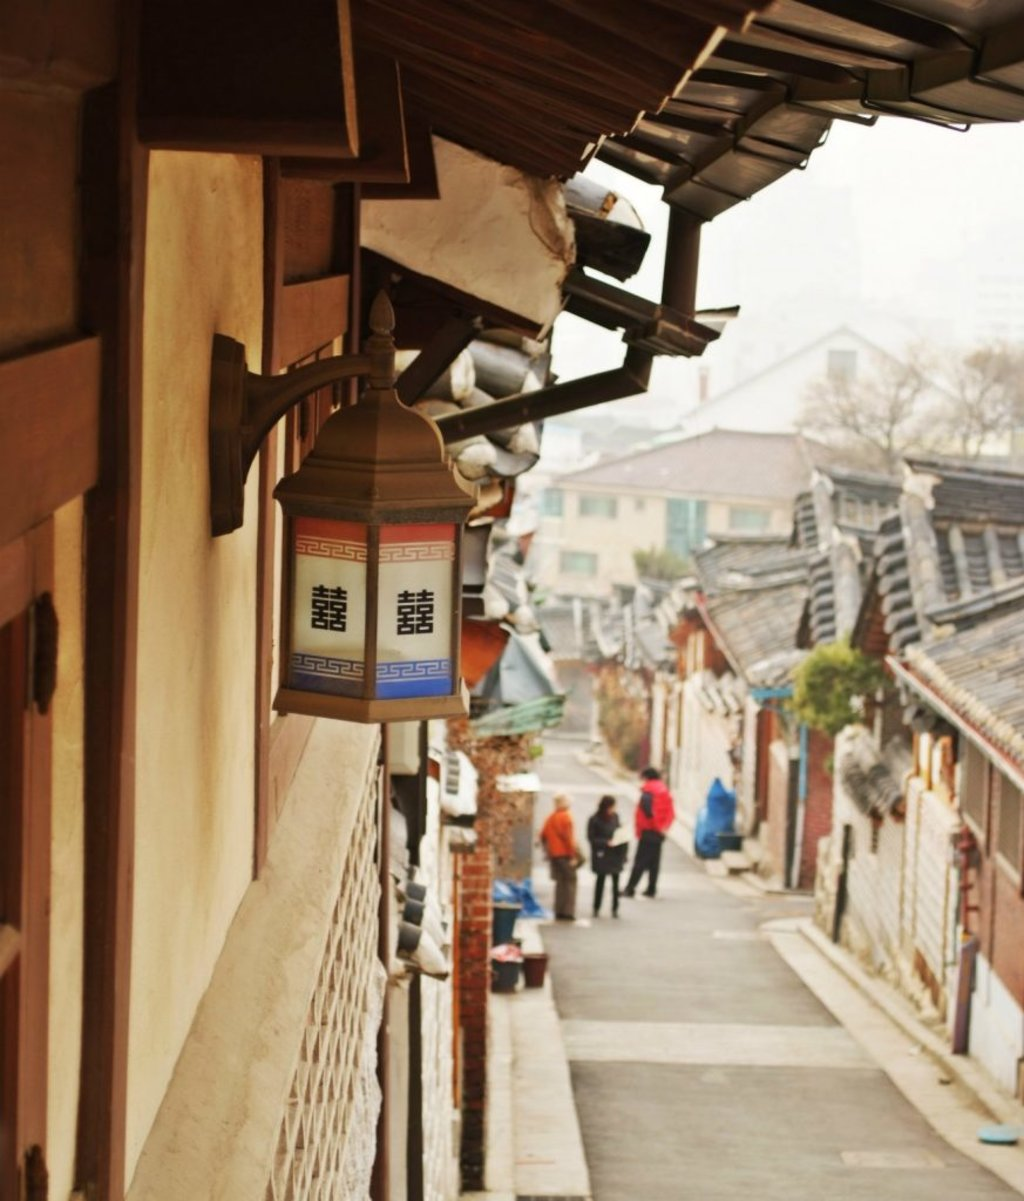 Bukchon Hanok Village in Seoul